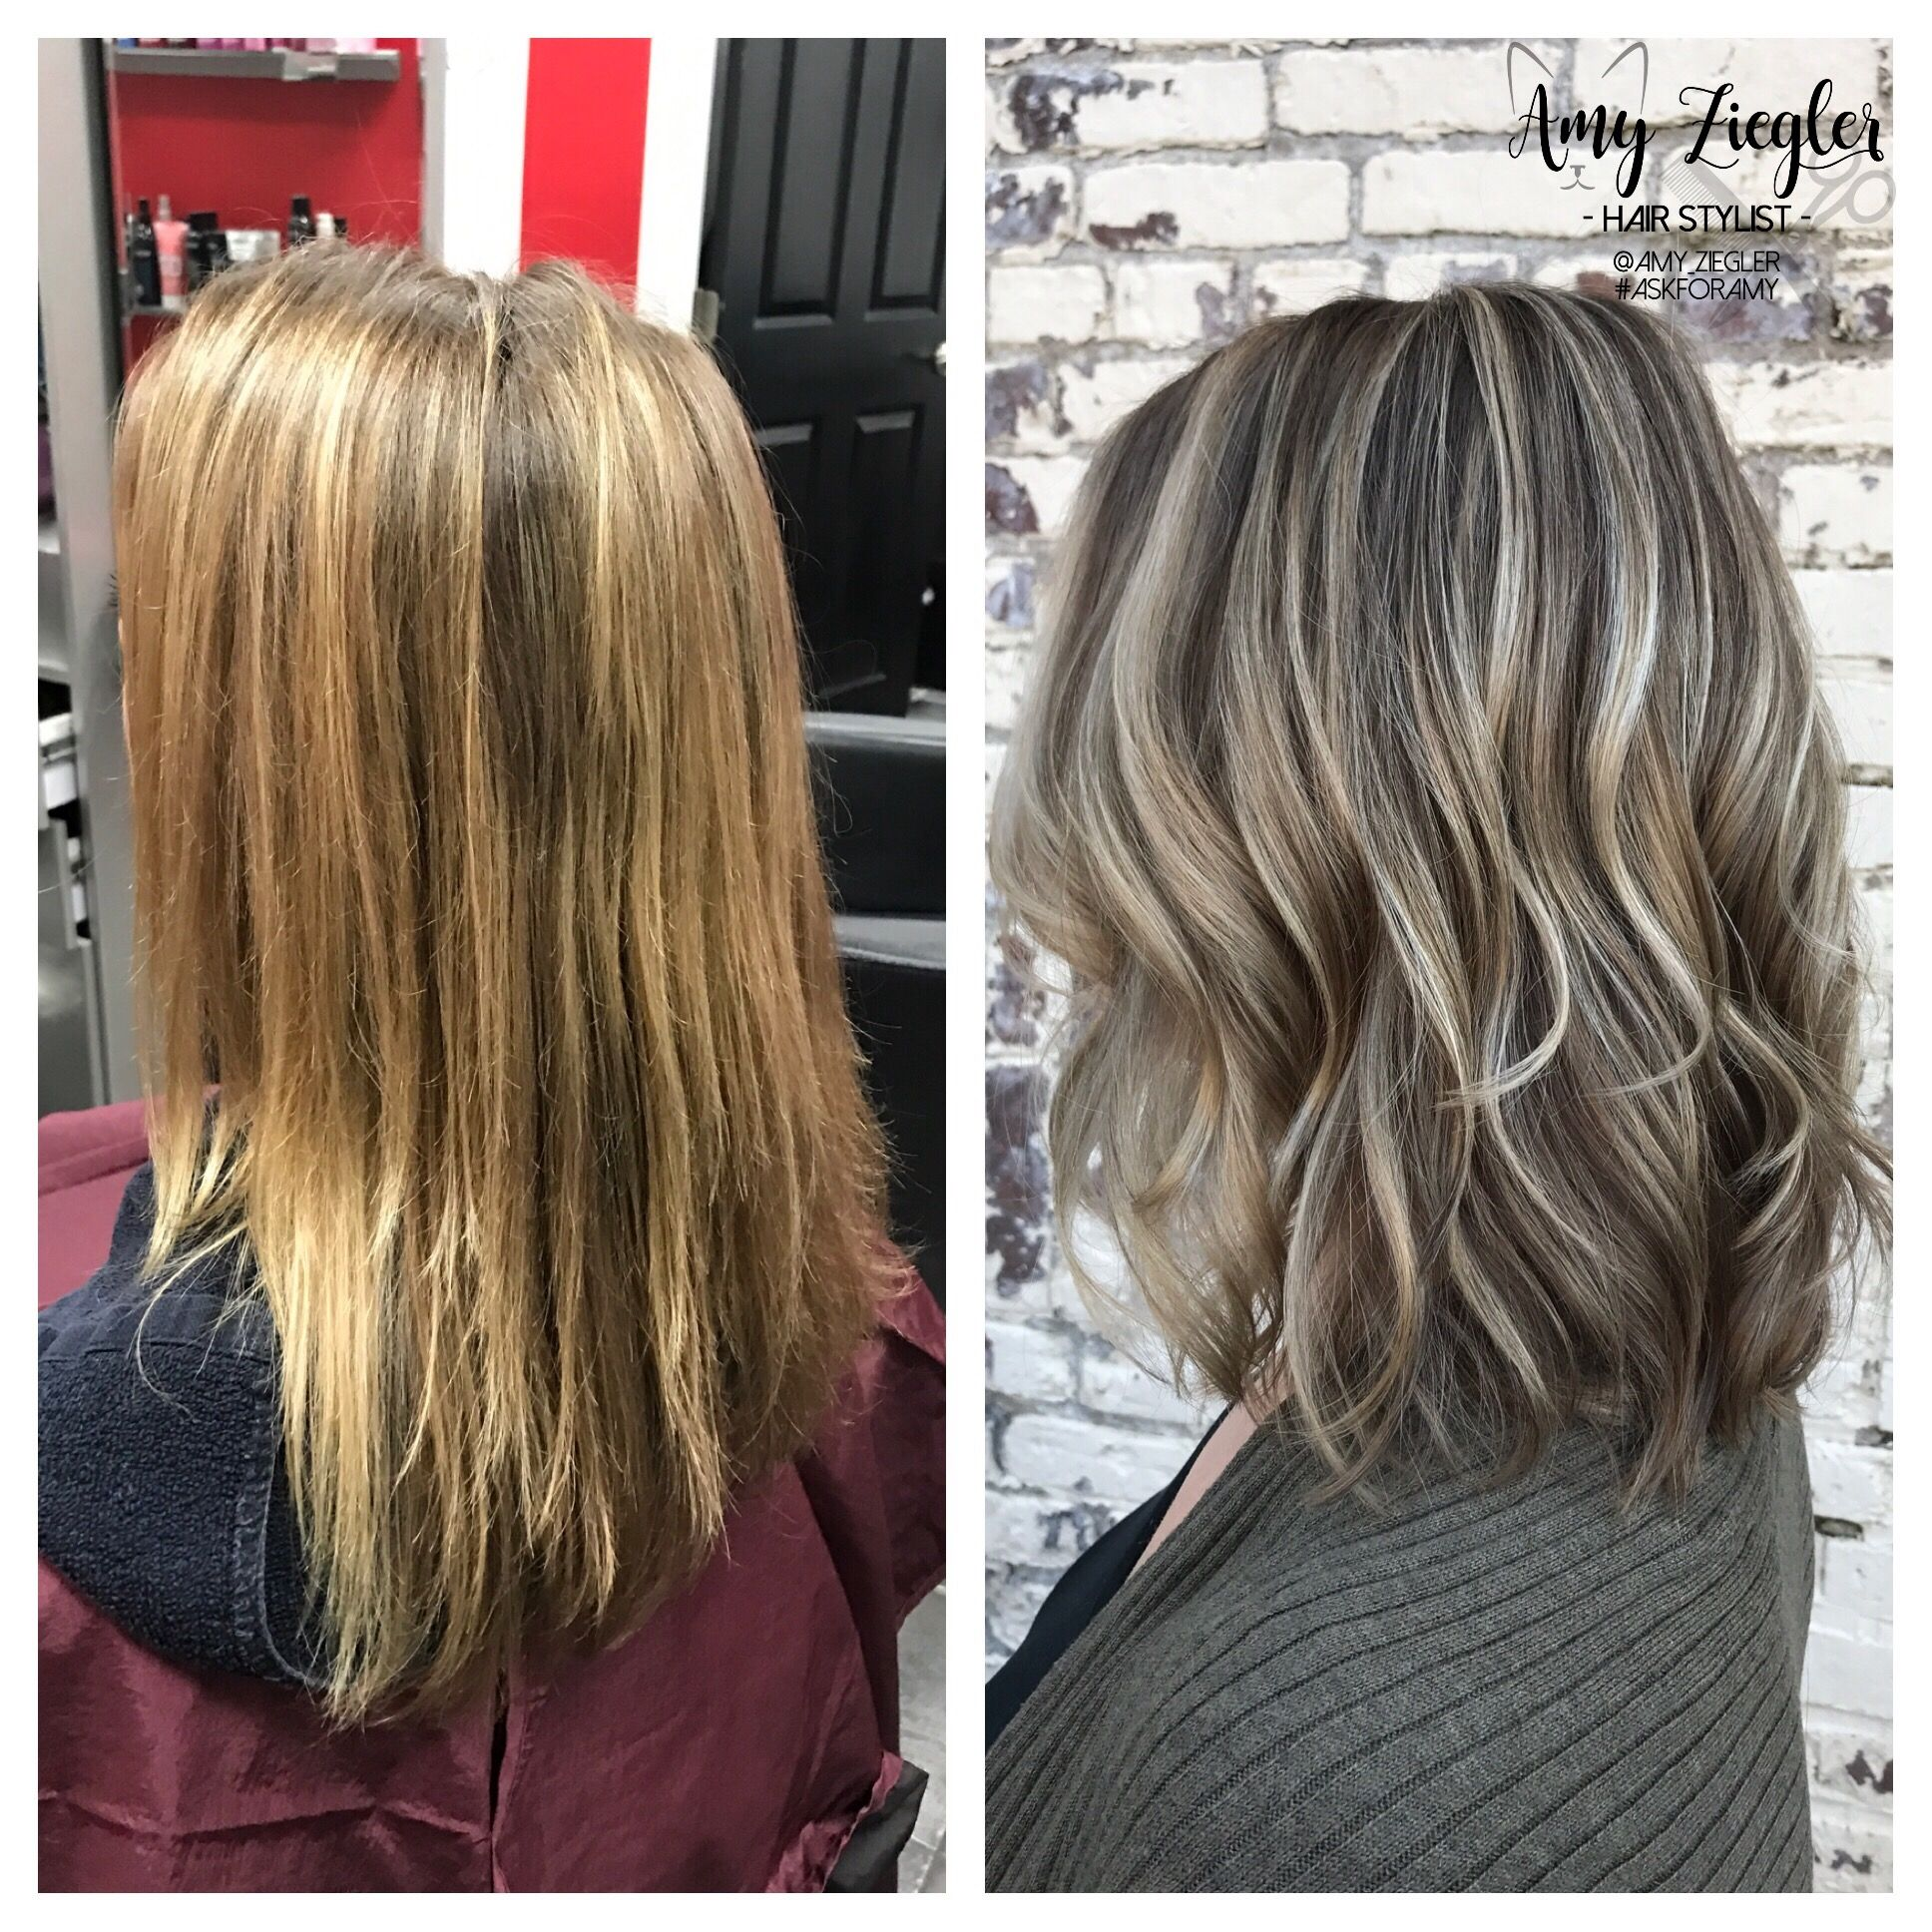 Medium Brown Hair With Lowlights: Ash Blonde Highlight/lowlight Transformation By @askforamy